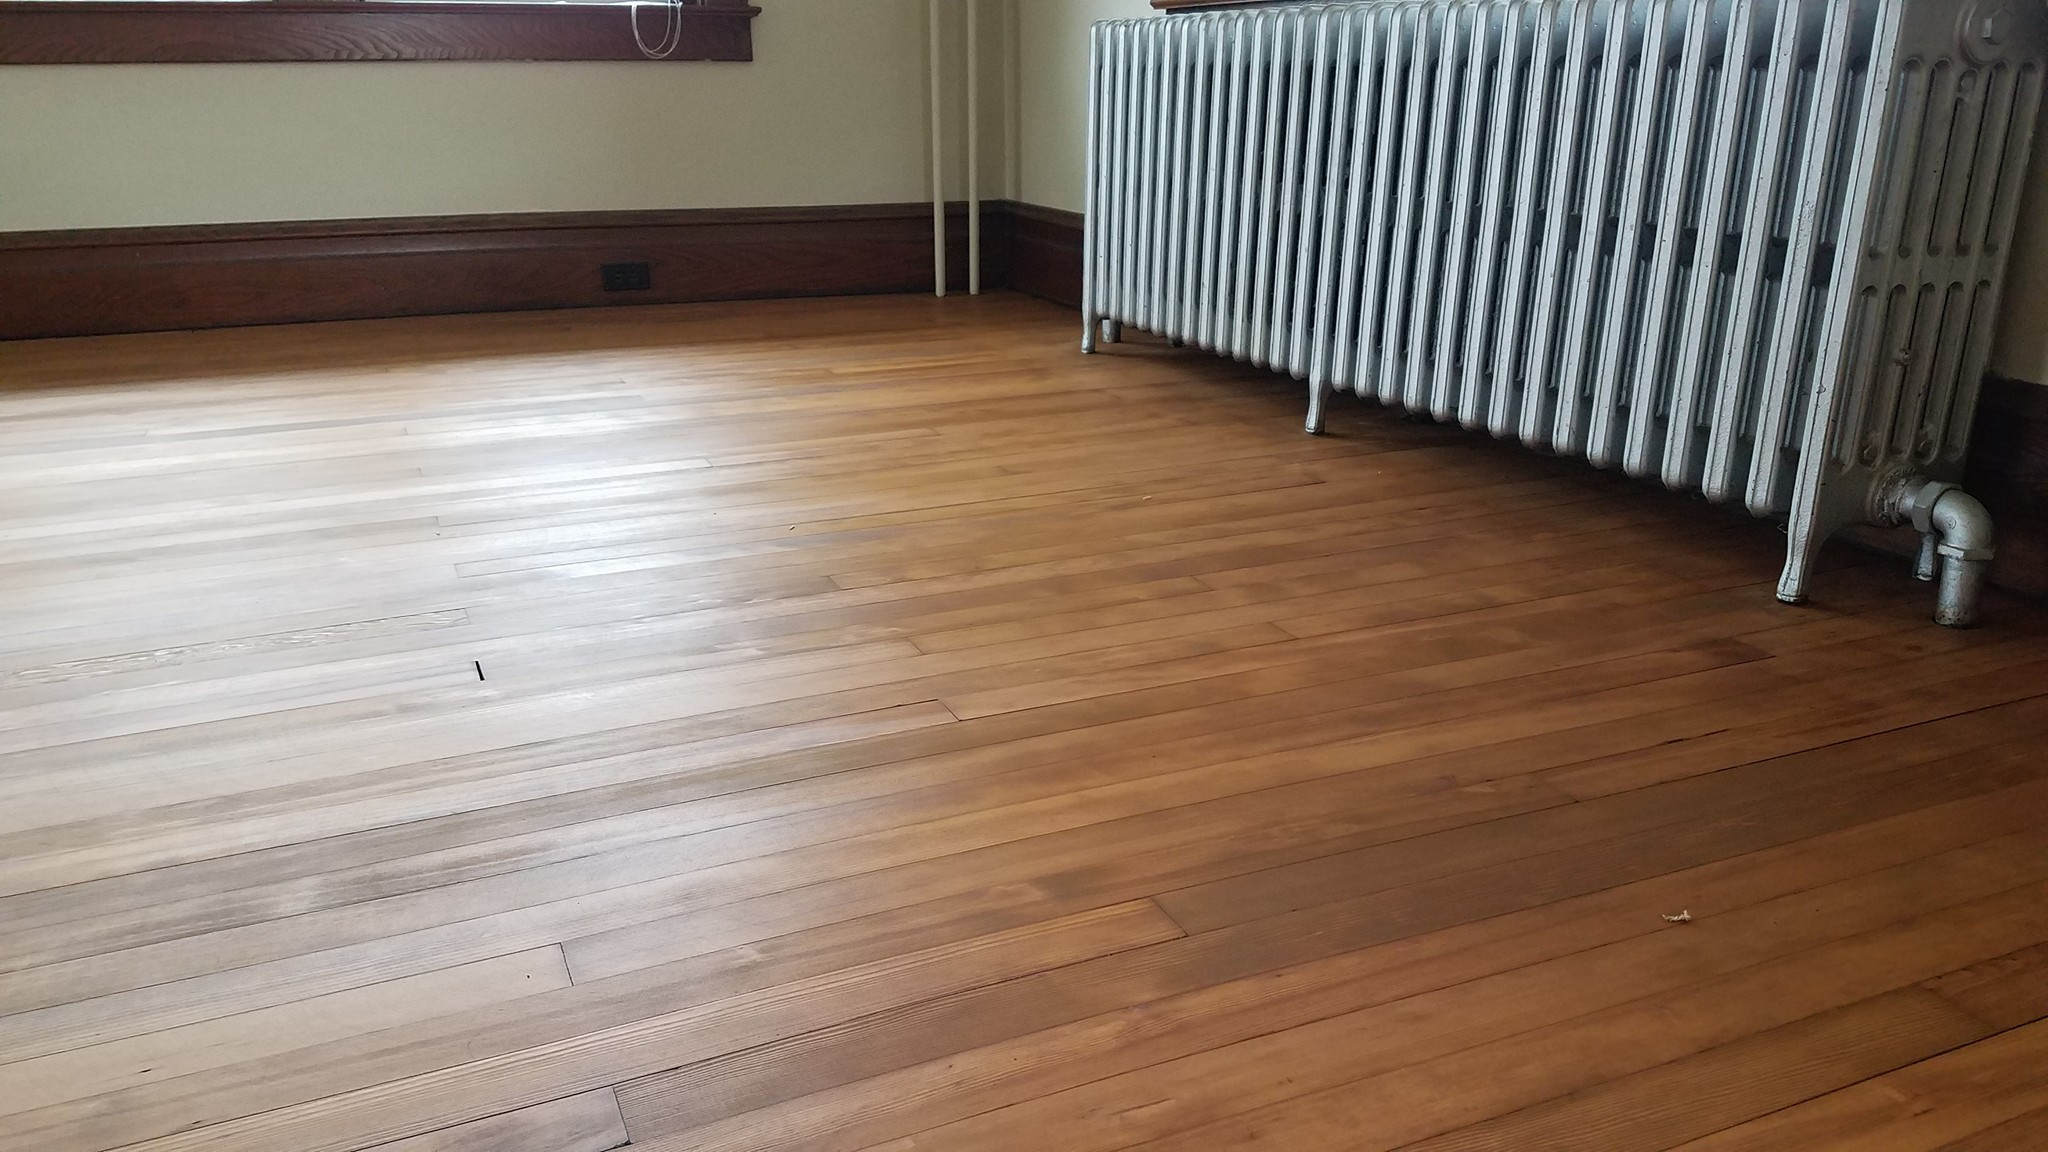 hardwood floors of lancaster pa of vintage wood flooring throughout 18192487 1622452841115889 4874100895389868825 o